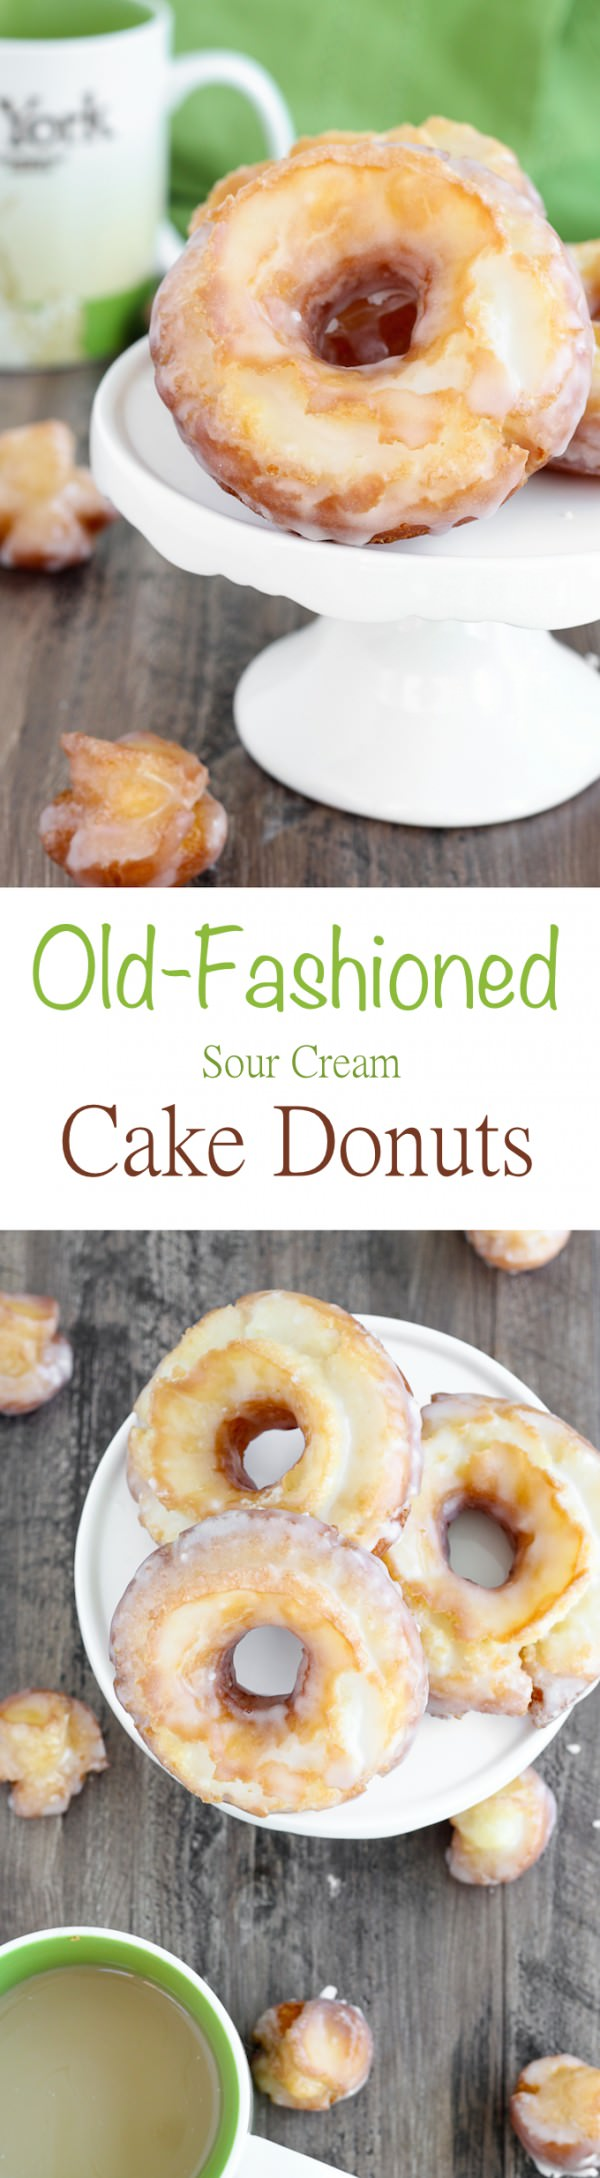 These Old Fashioned Sour Cream Cake Donuts are UNREAL. The inside is soft, tender and cakey; and the outside is crispy with a classic sweet glaze.